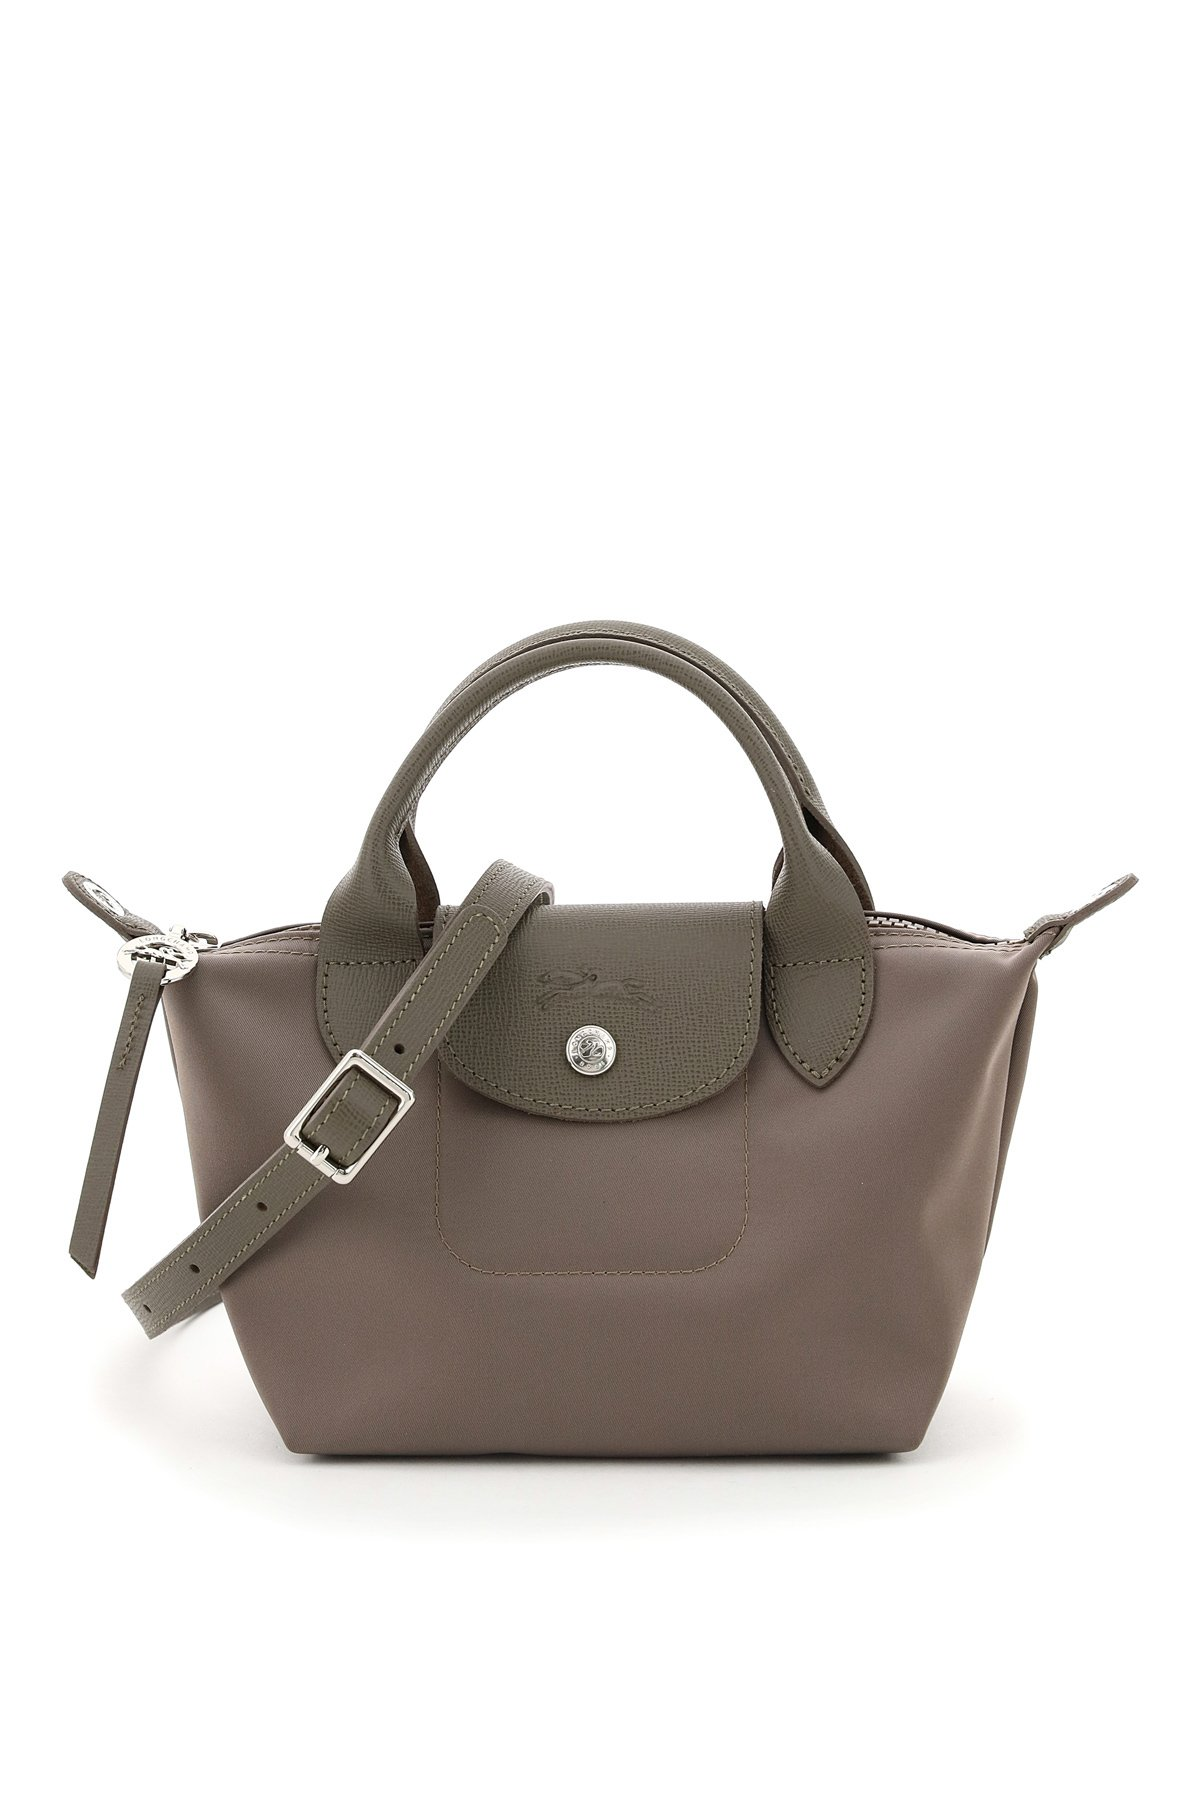 Le Pliage Néo mini tote bag in nylon fabric by Longchamp, with double leather handle, removable and